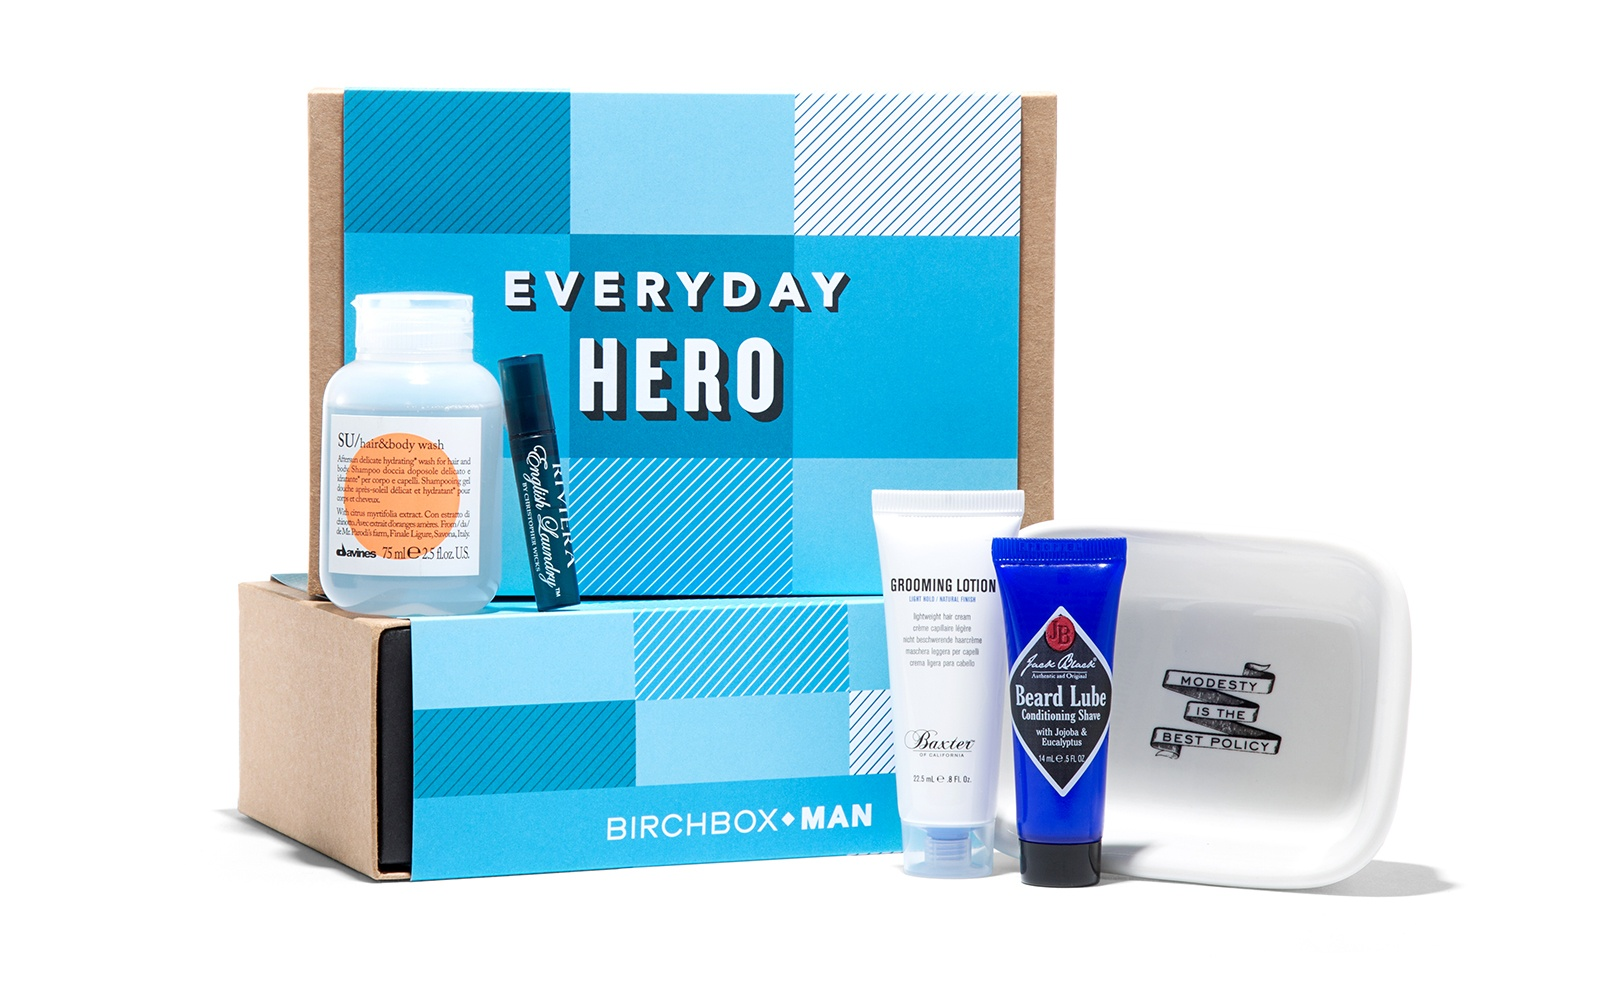 Birchbox Man Everday Hero Box